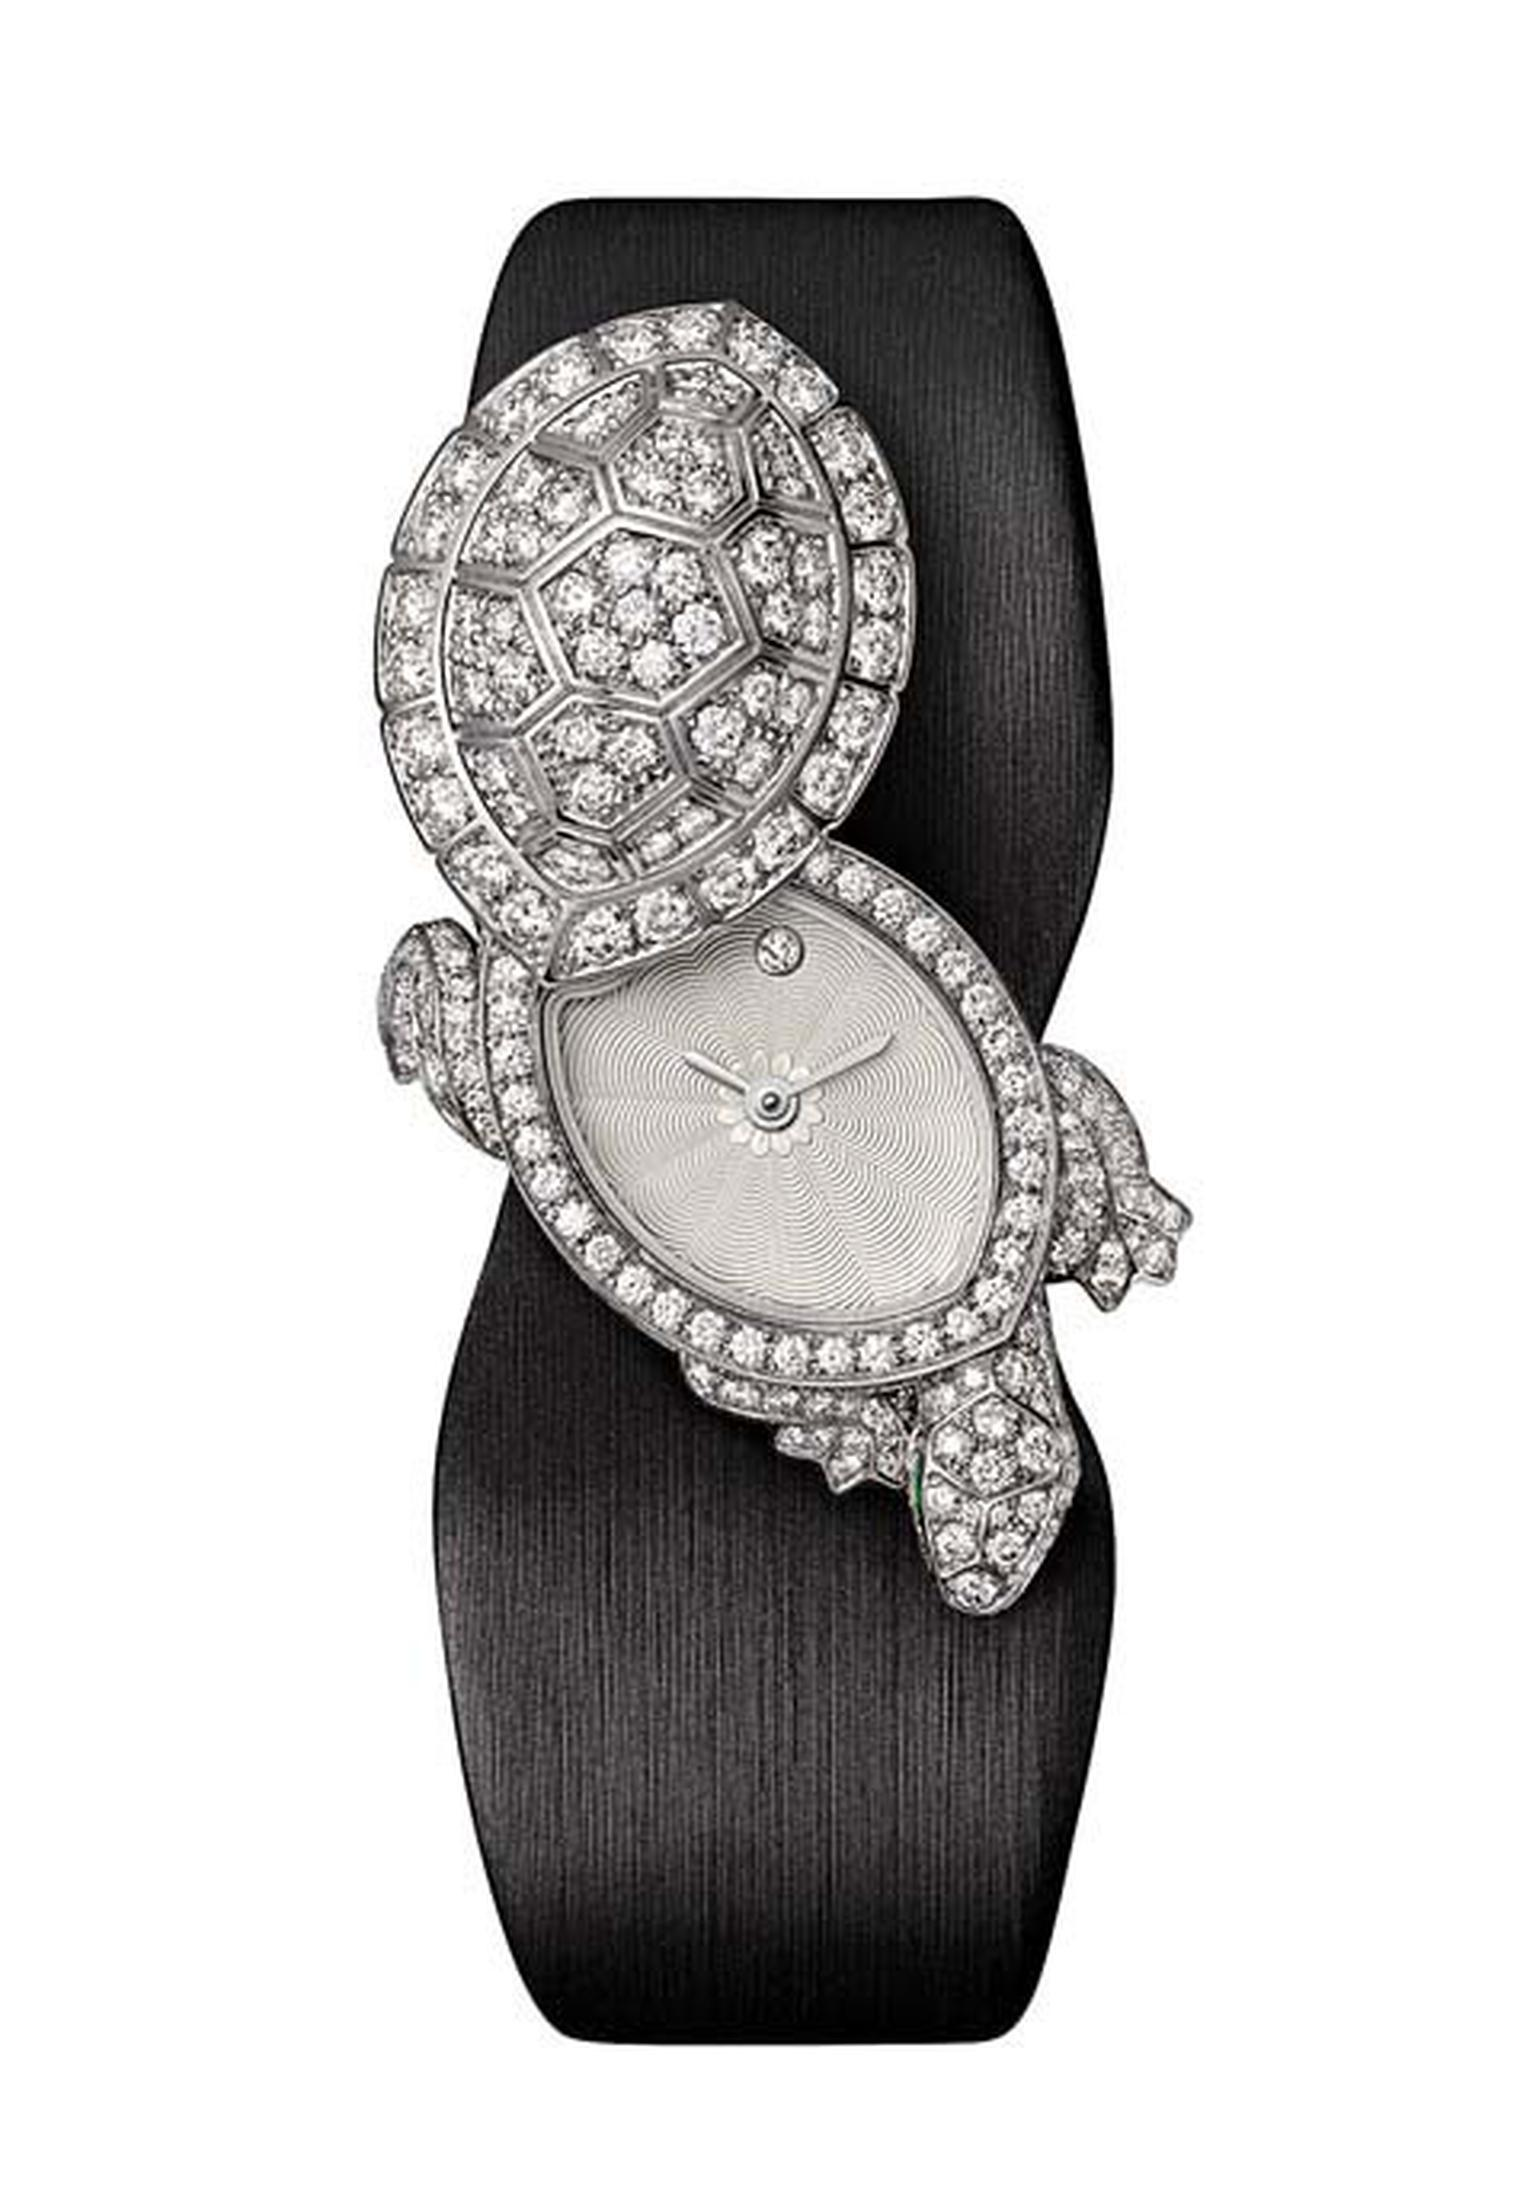 Cartier_Fabuleux_TORTOISE_DIAMONDS_2.jpg